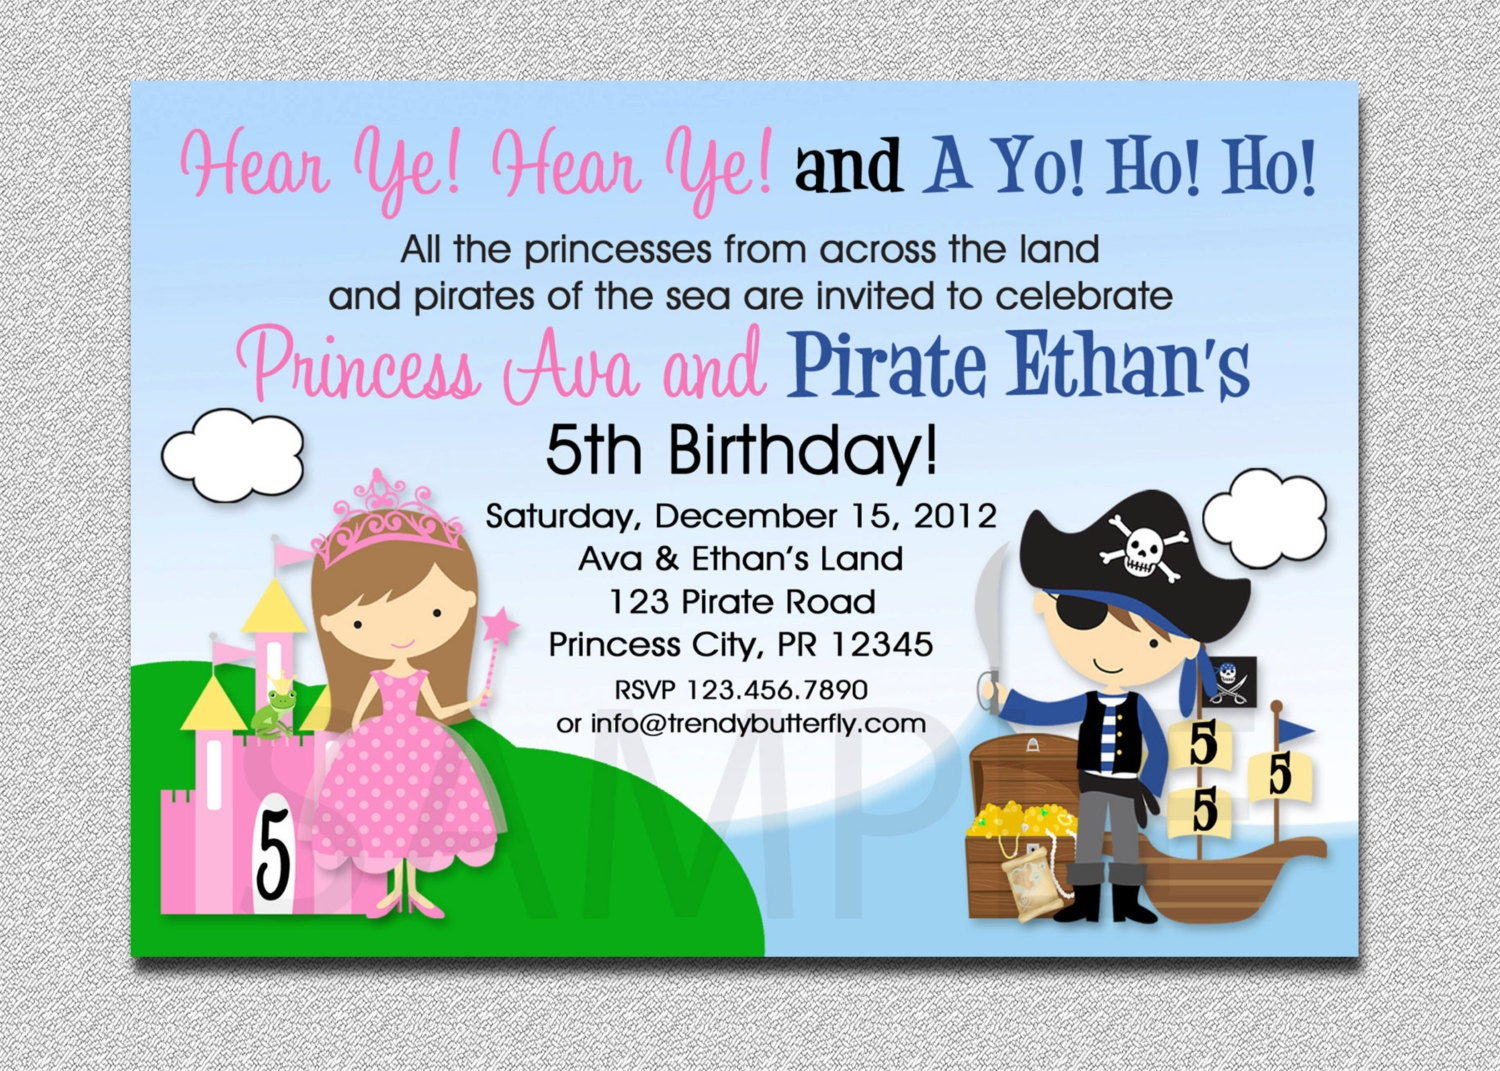 Princess Pirate Birthday Invitation Princess and Pirate Party – Free Printable Pirate Birthday Party Invitations